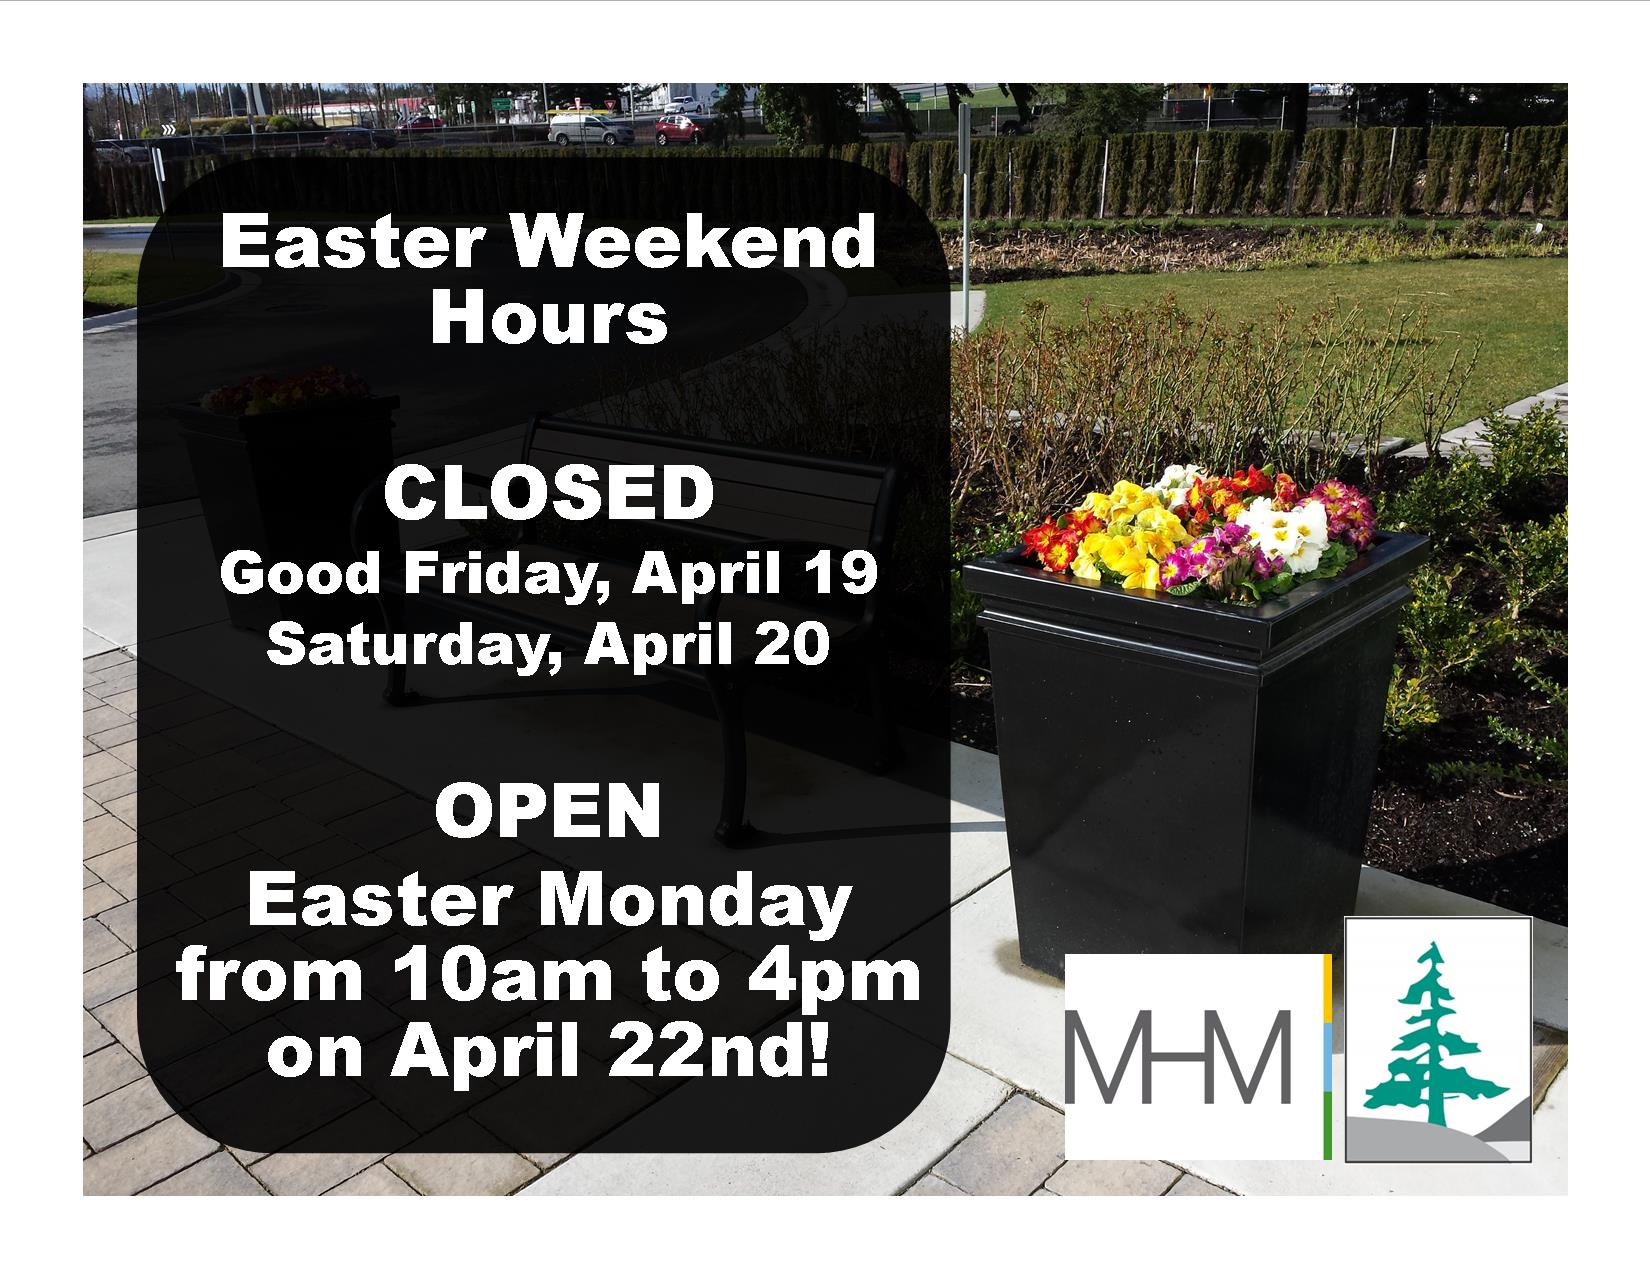 2019 04 19 to 22 CLOSURE SIGN EASTER